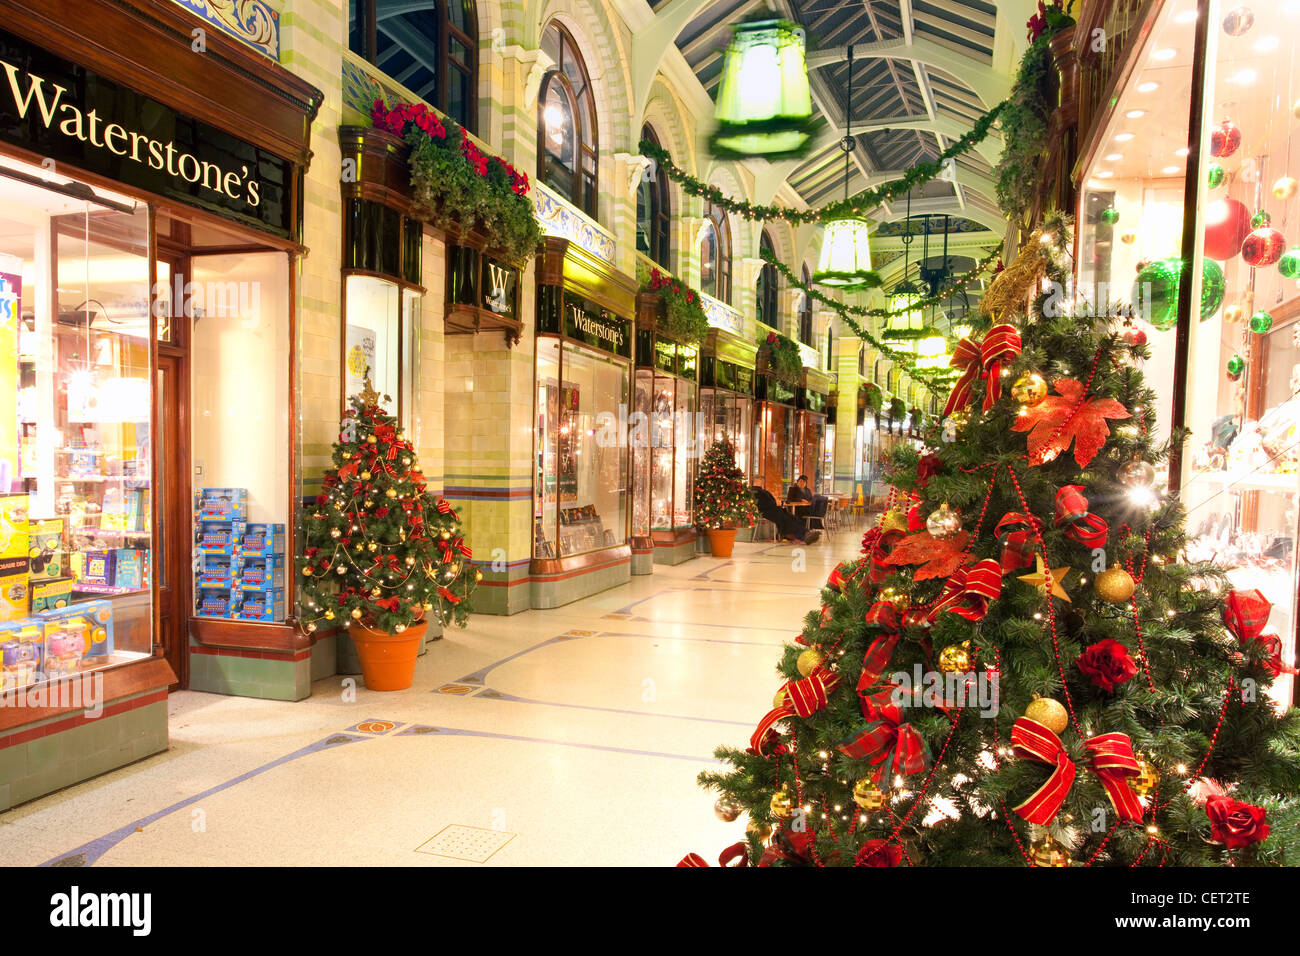 Christmas decorations outside shops in Royal Arcade in Norwich City centre. - Stock Image